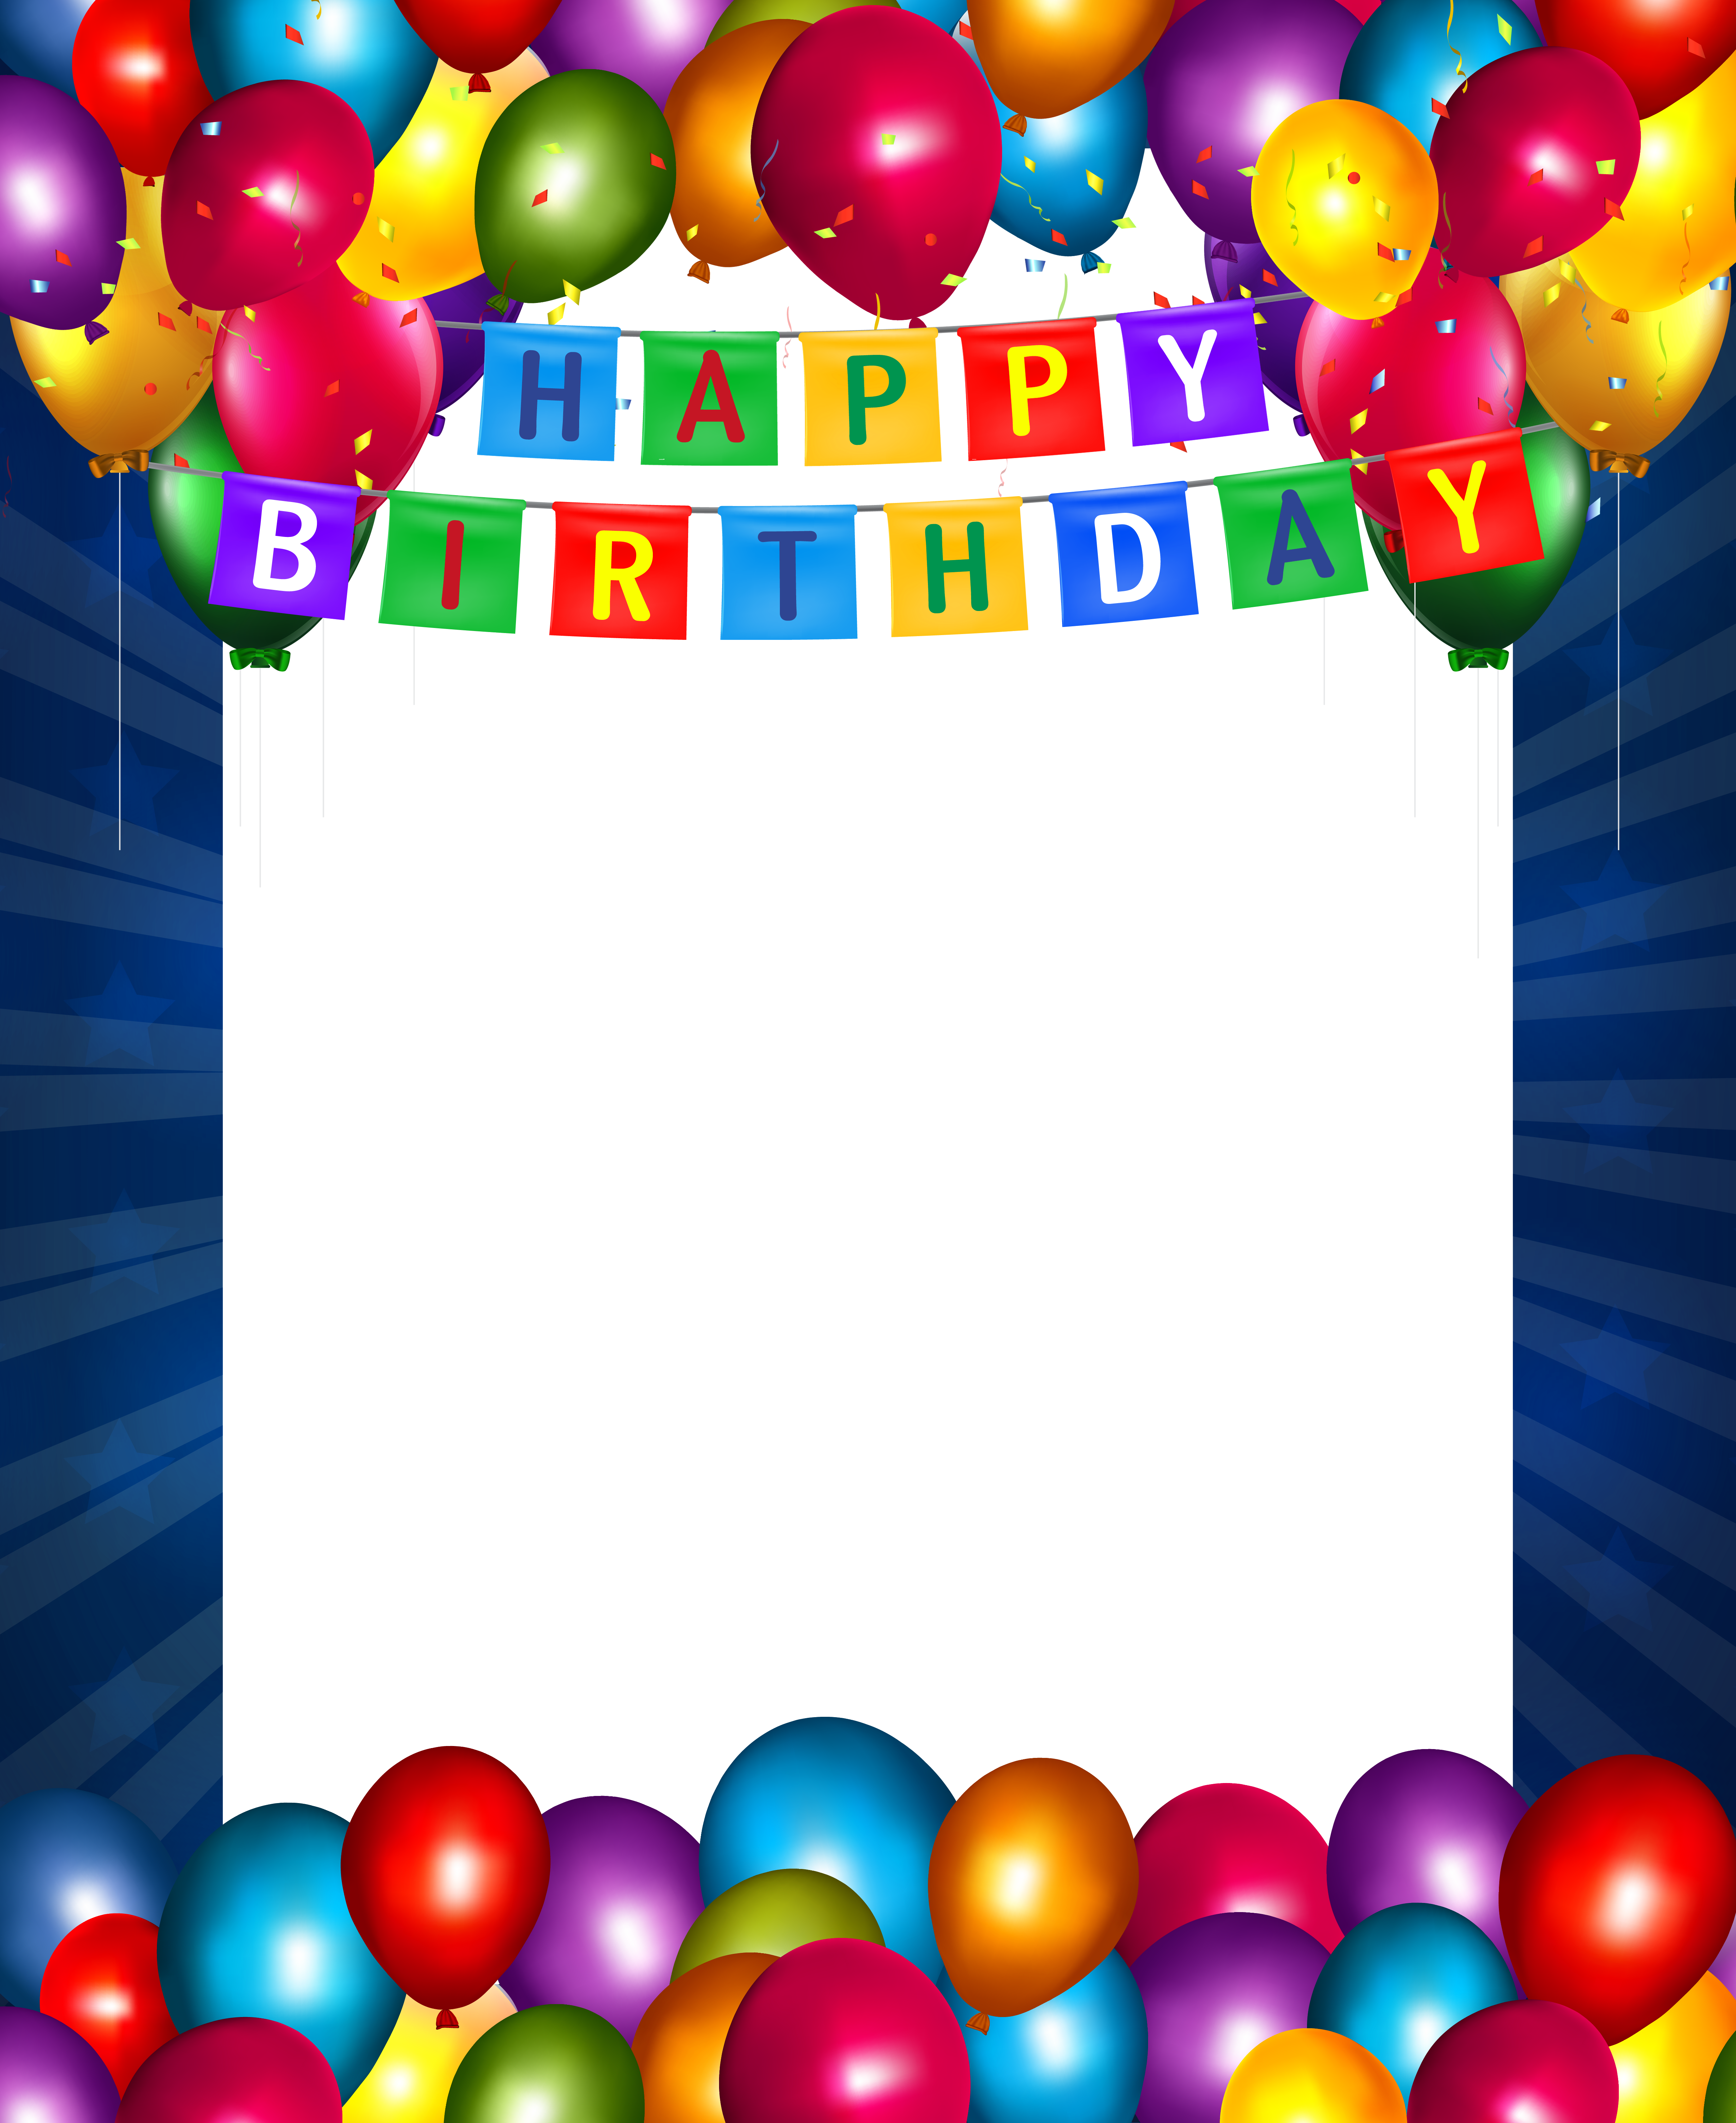 Birthday background png. Pin by aoril on